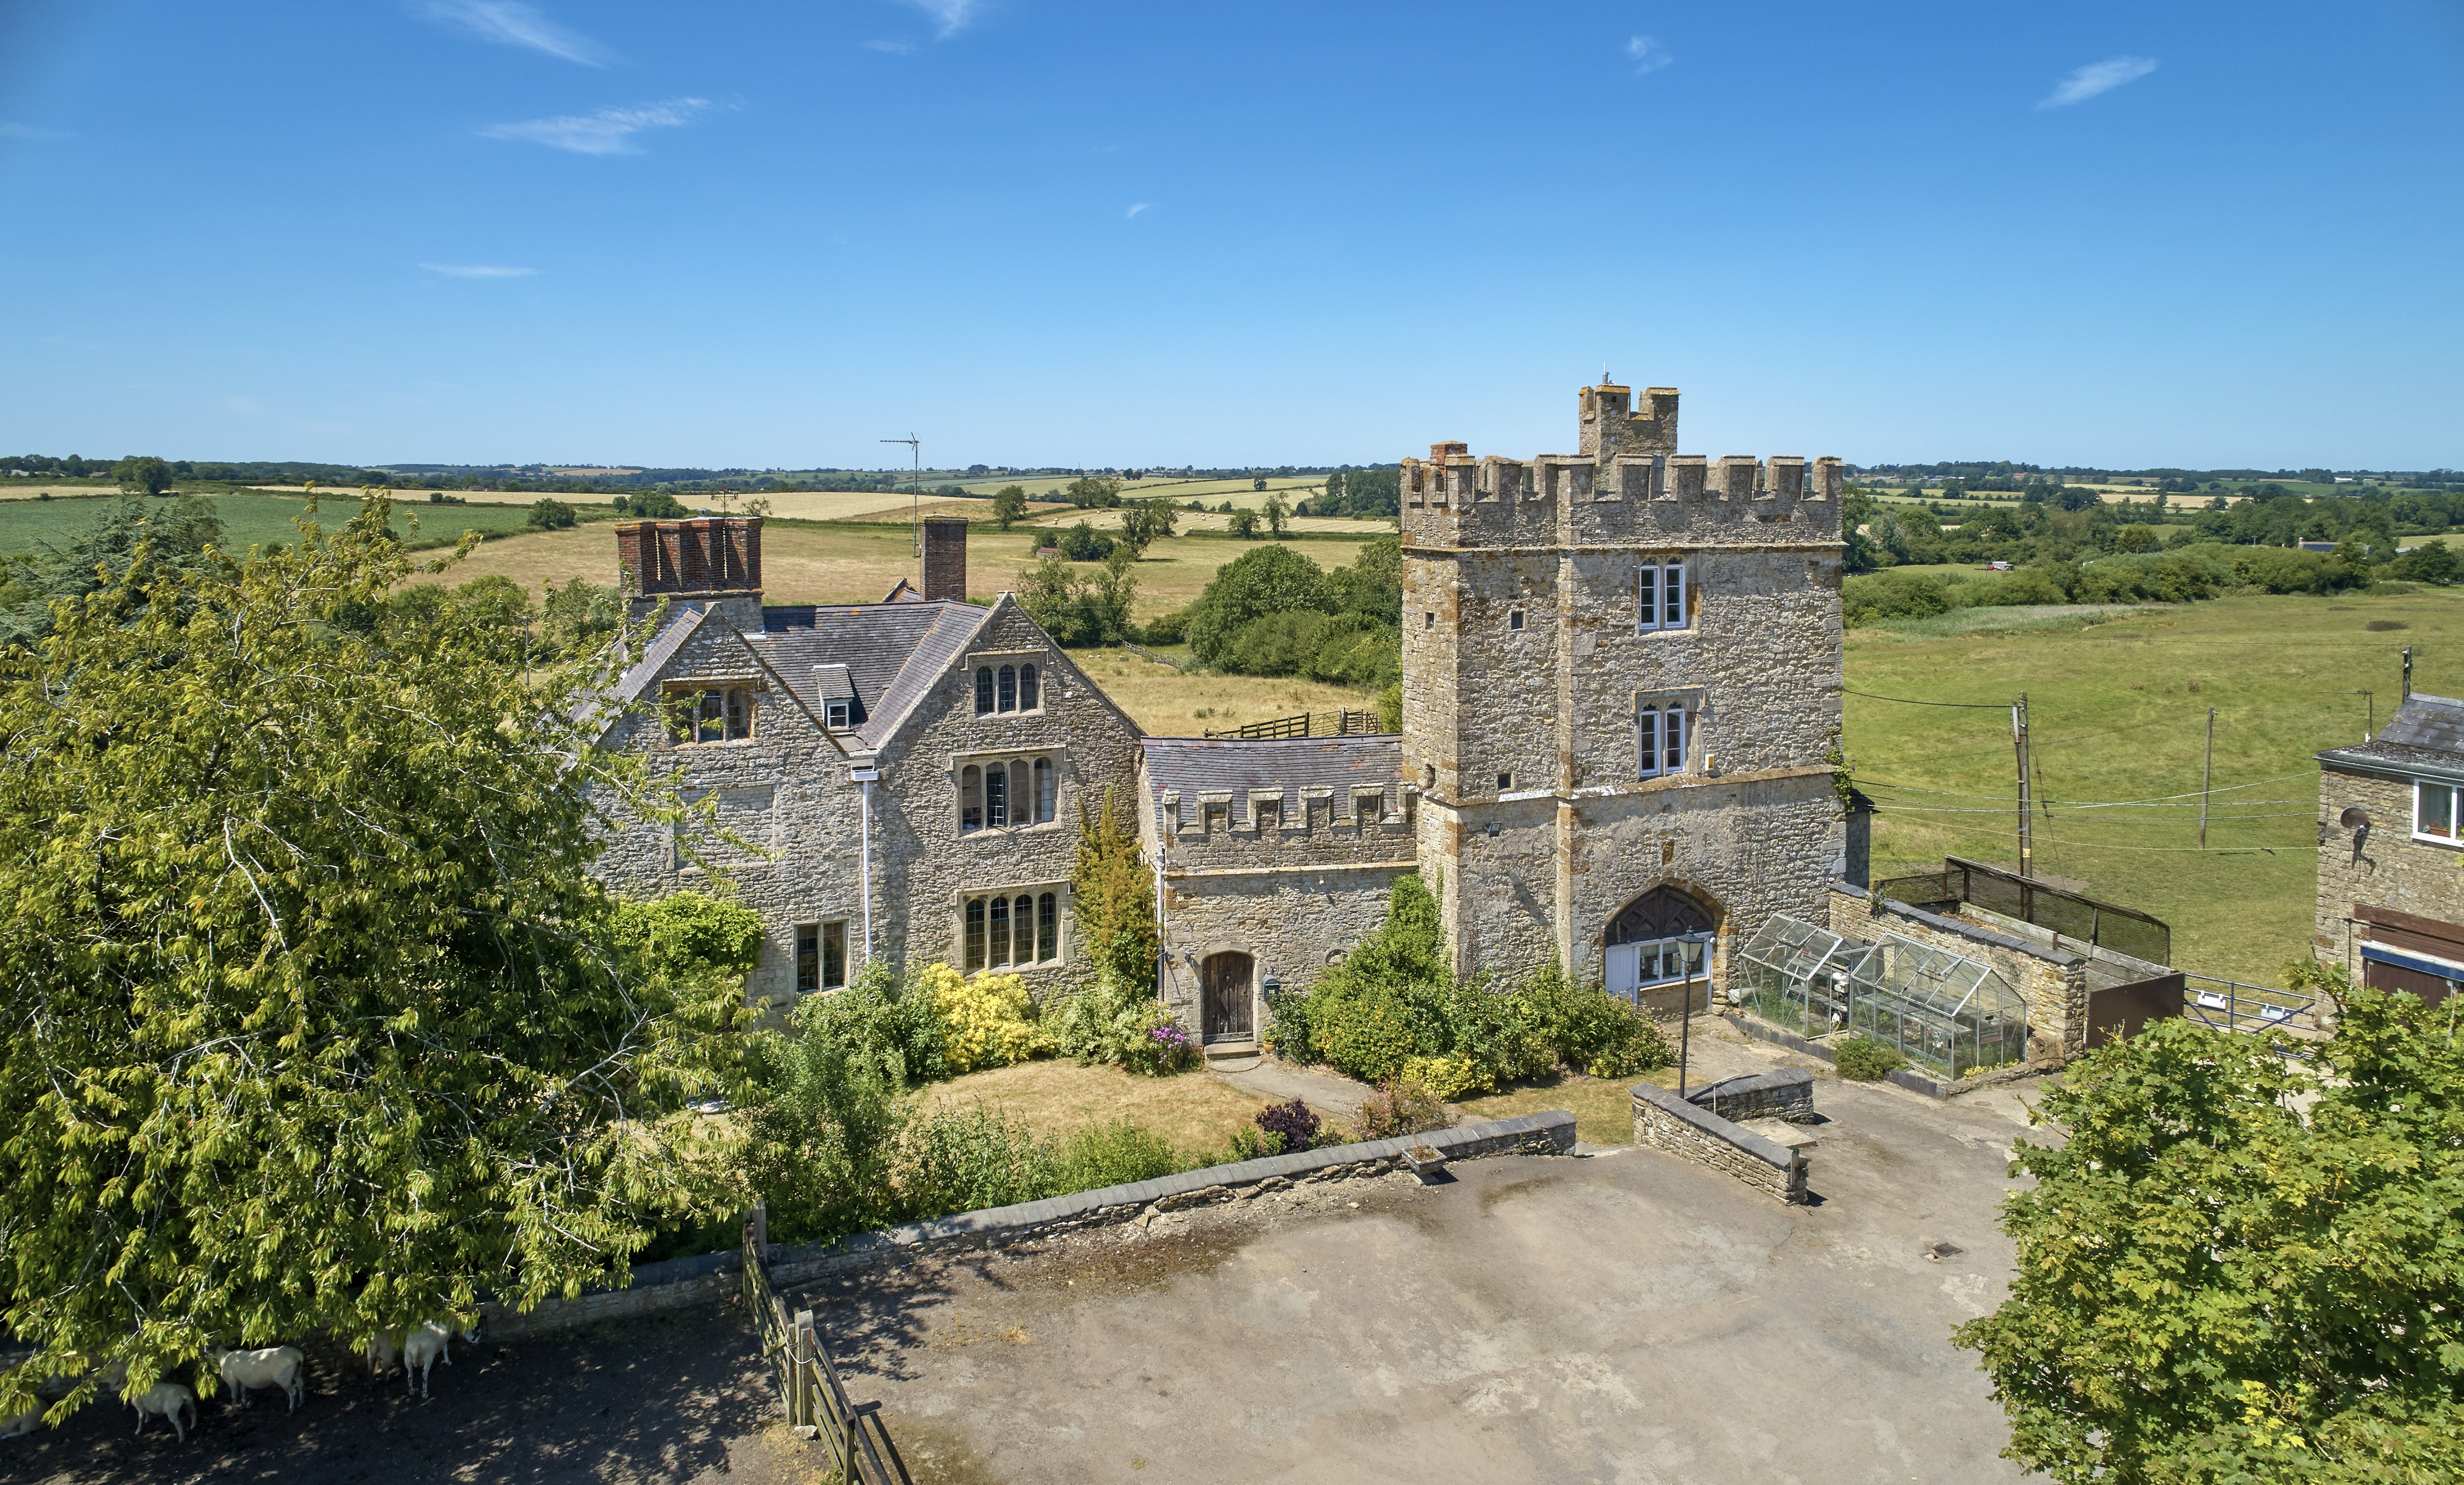 A castle in the 'new Cotswolds' for sale with stone spiral staircases, 30 acres and a castellated roof terrace